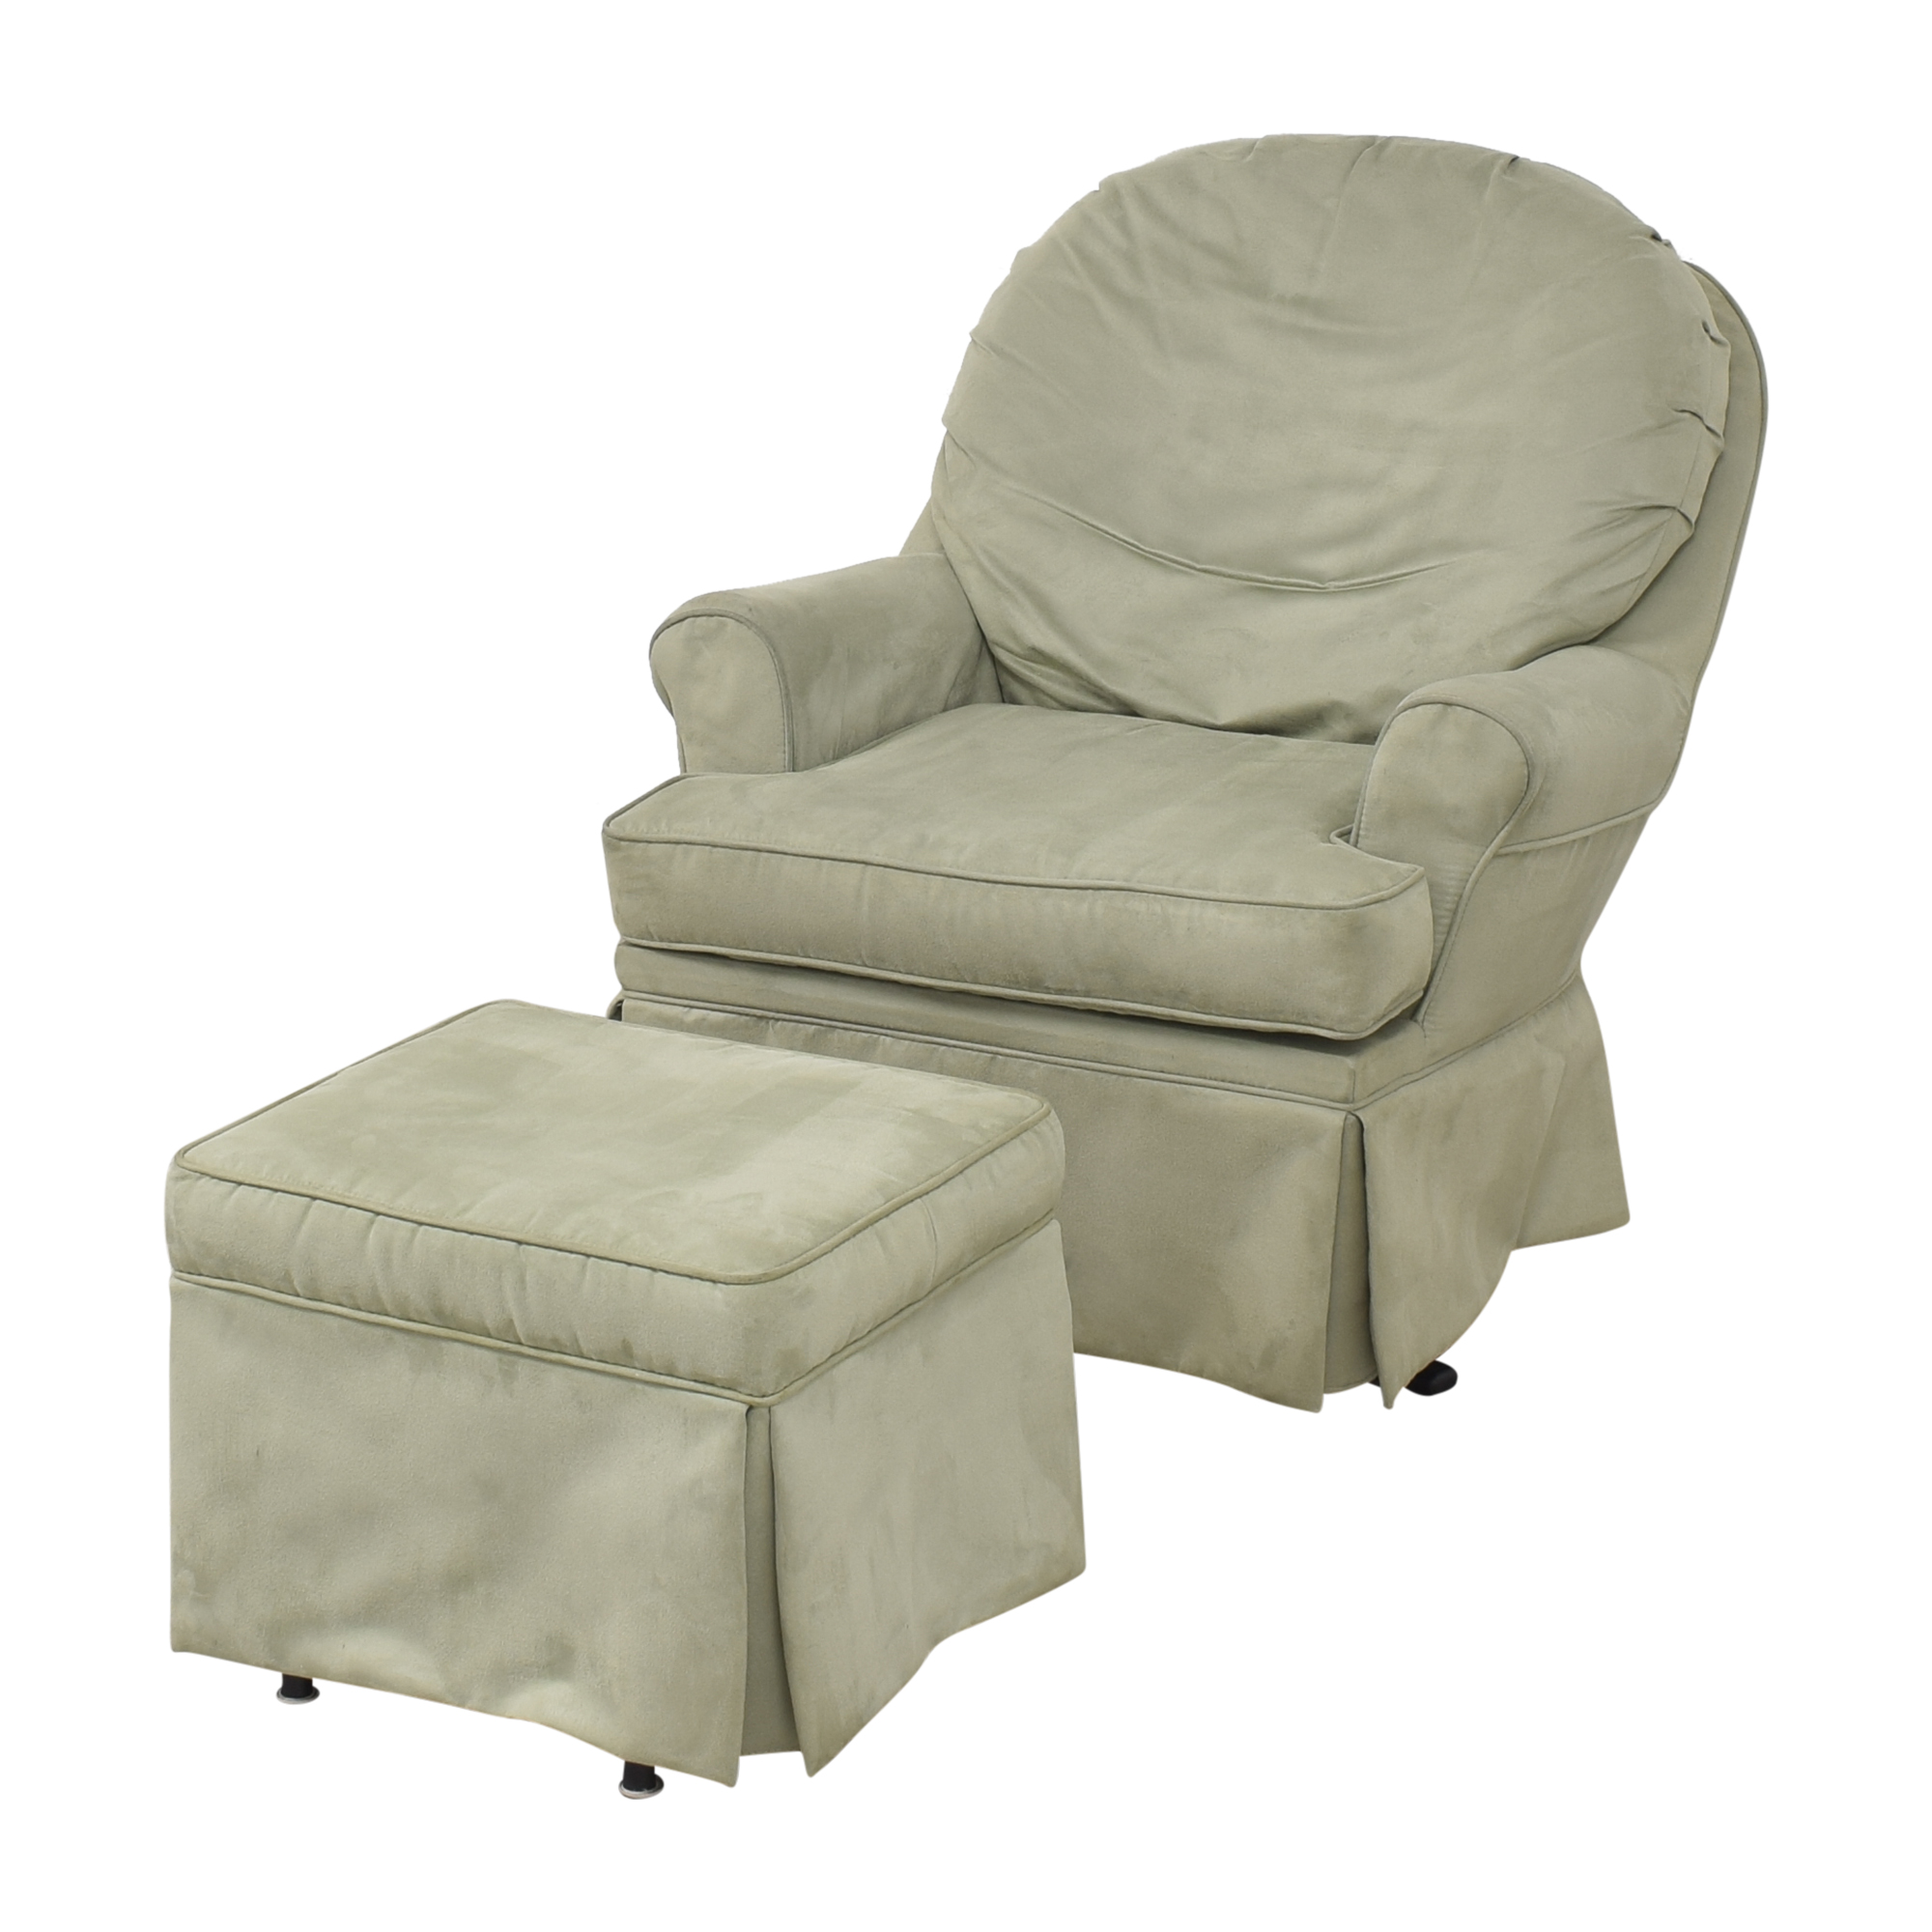 buy Dutailier Upholstered Glider with Ottoman Dutailier Chairs